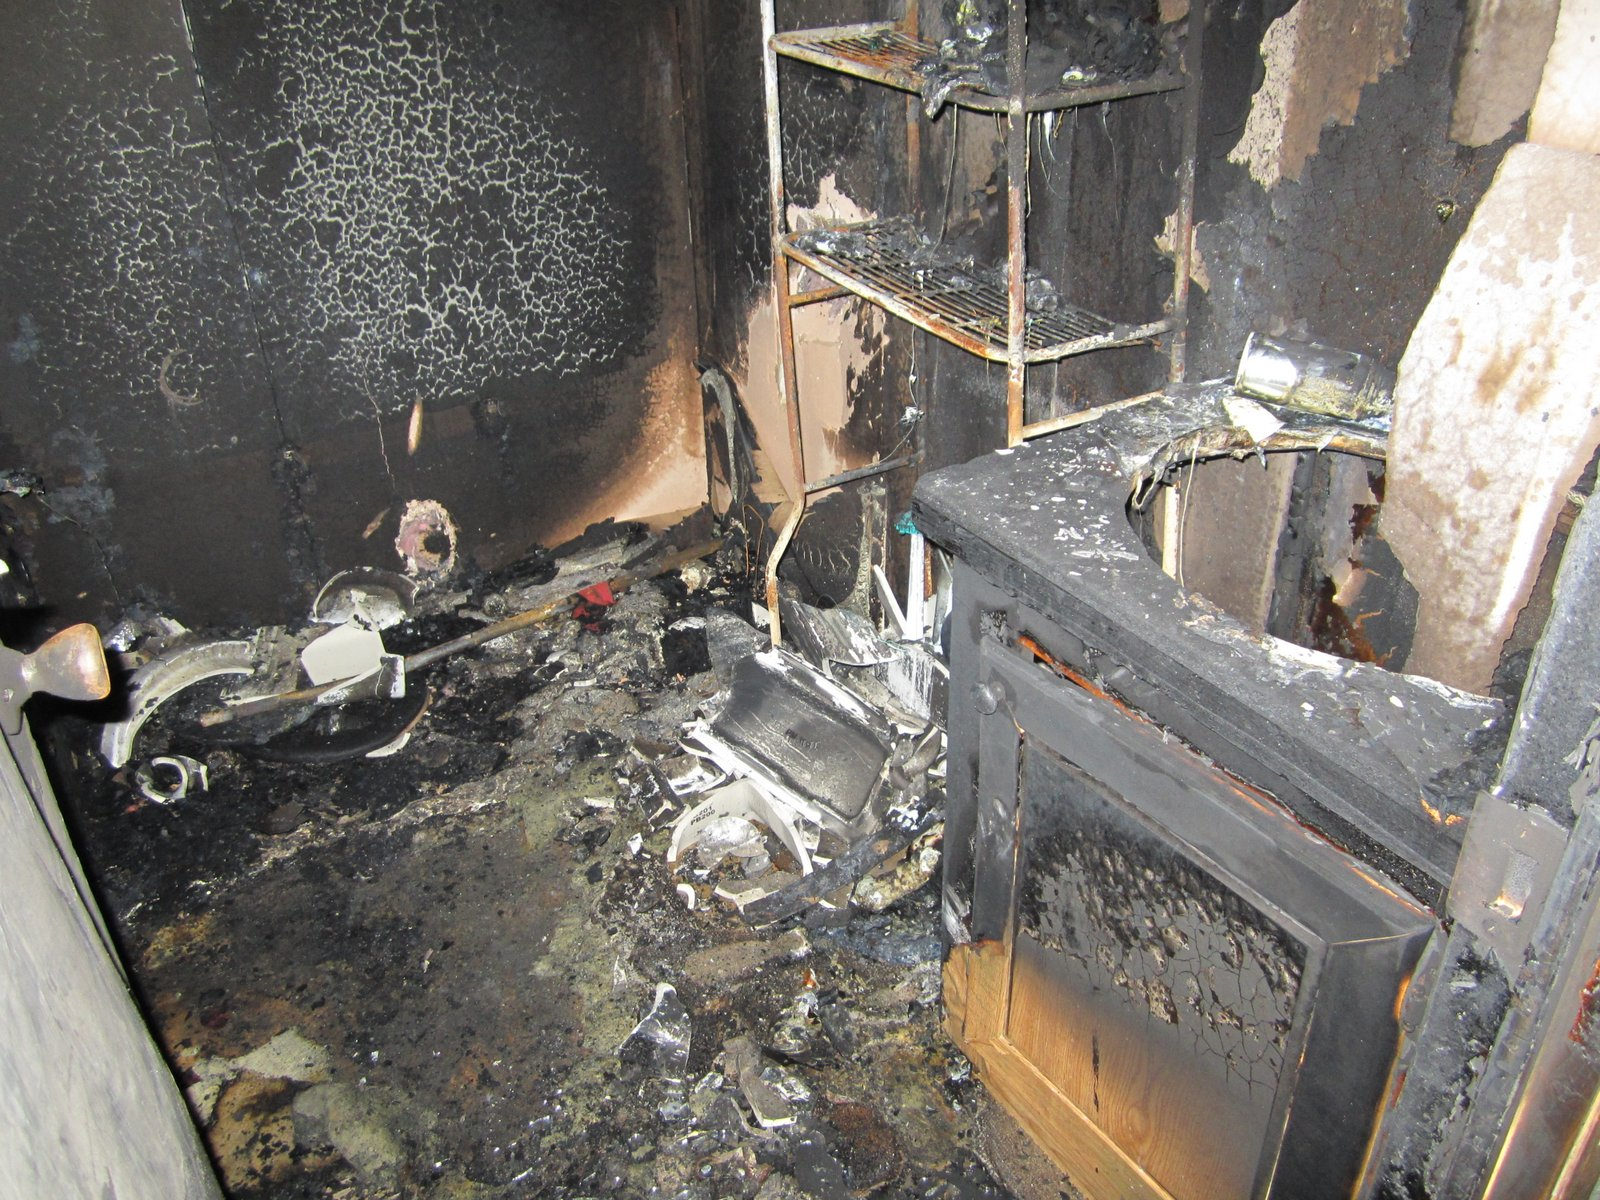 Meth fire explosion in mobile home bathroom